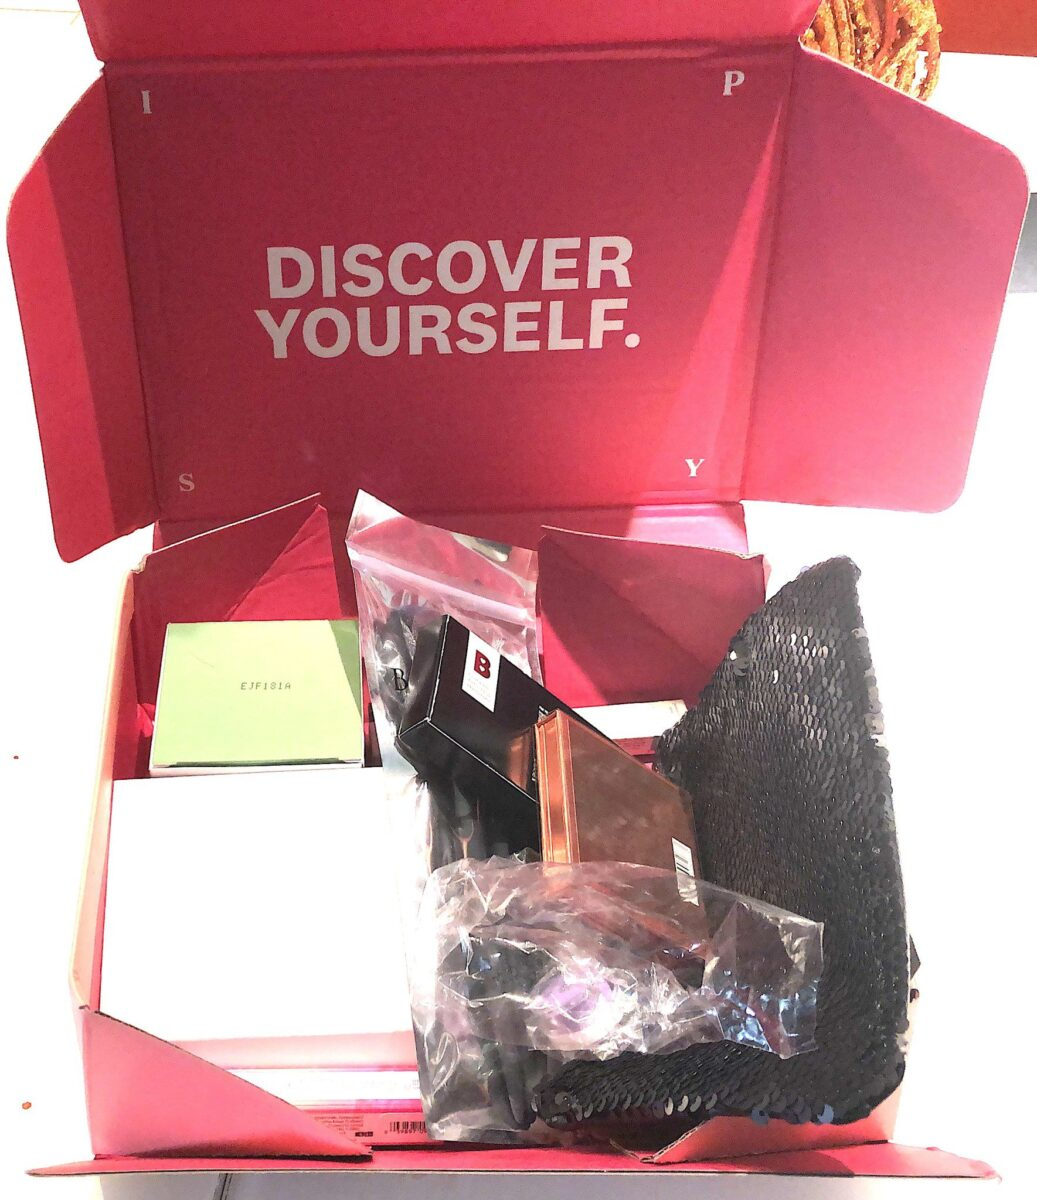 IPSY GLAM BAG PLUS OCTOBER 2019 PACKAGING-INSIDE THE BOX